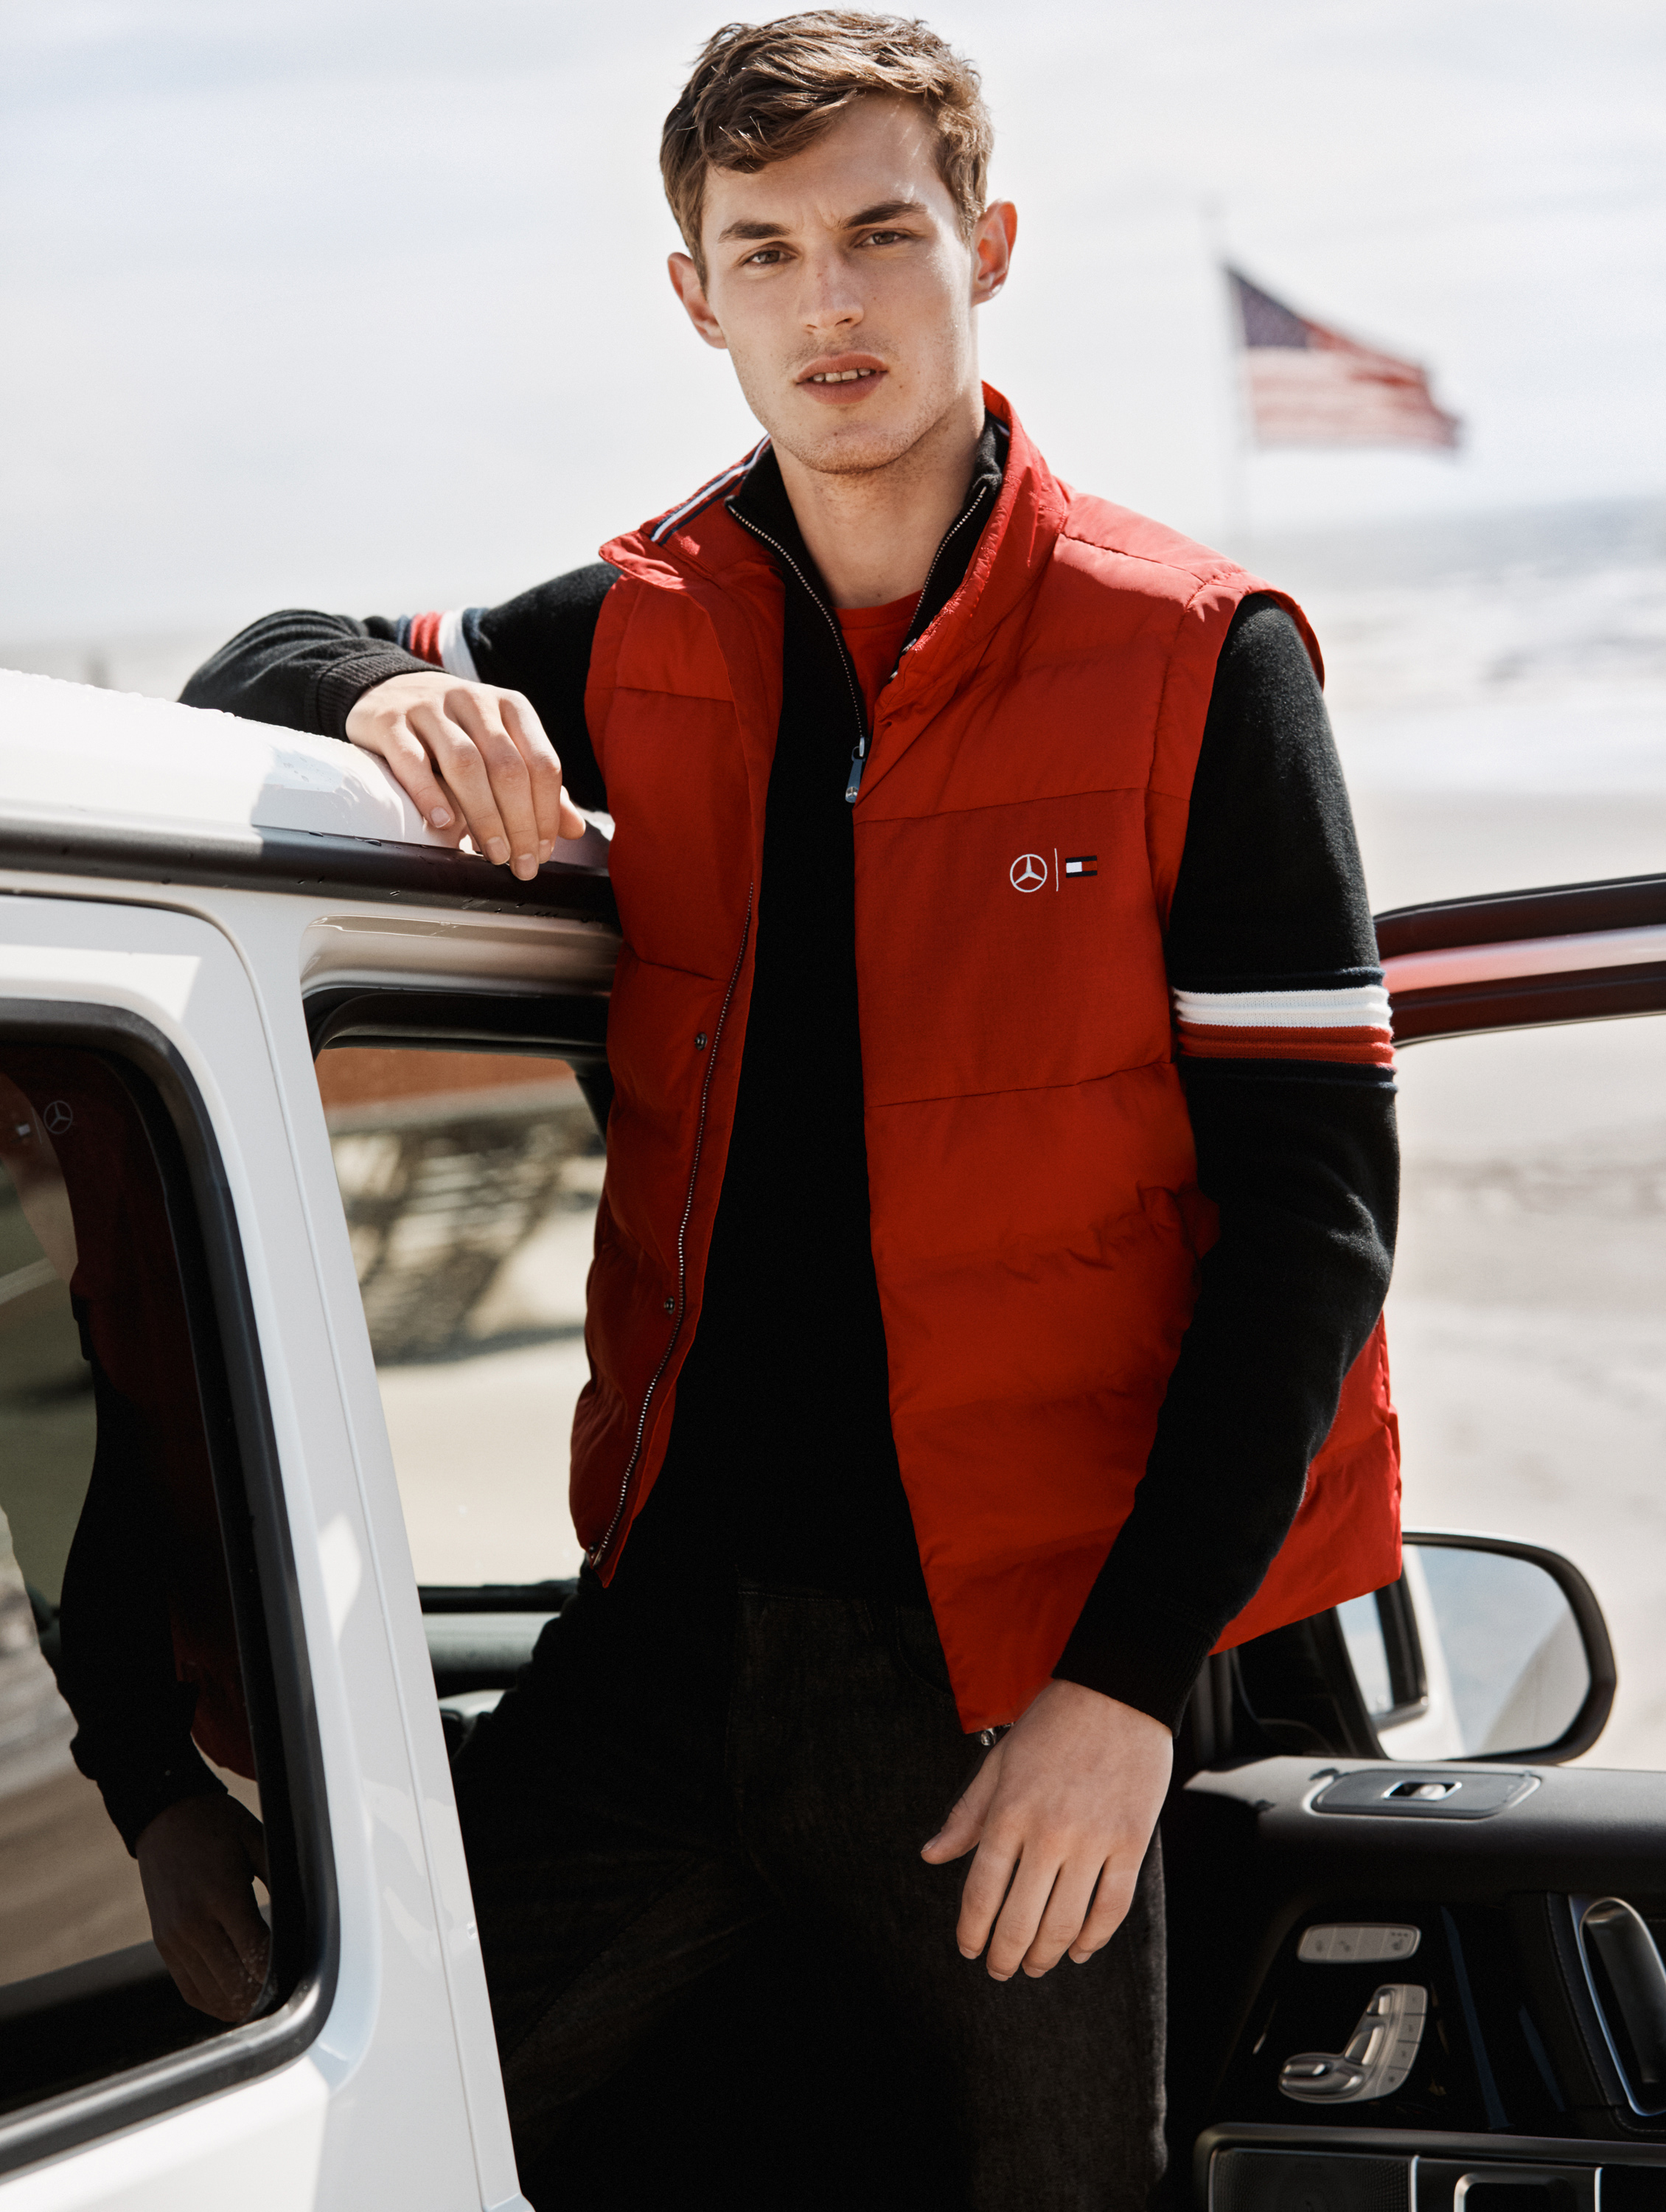 tommy hilfiger x mercedes-benz look book 2 Kit Butler